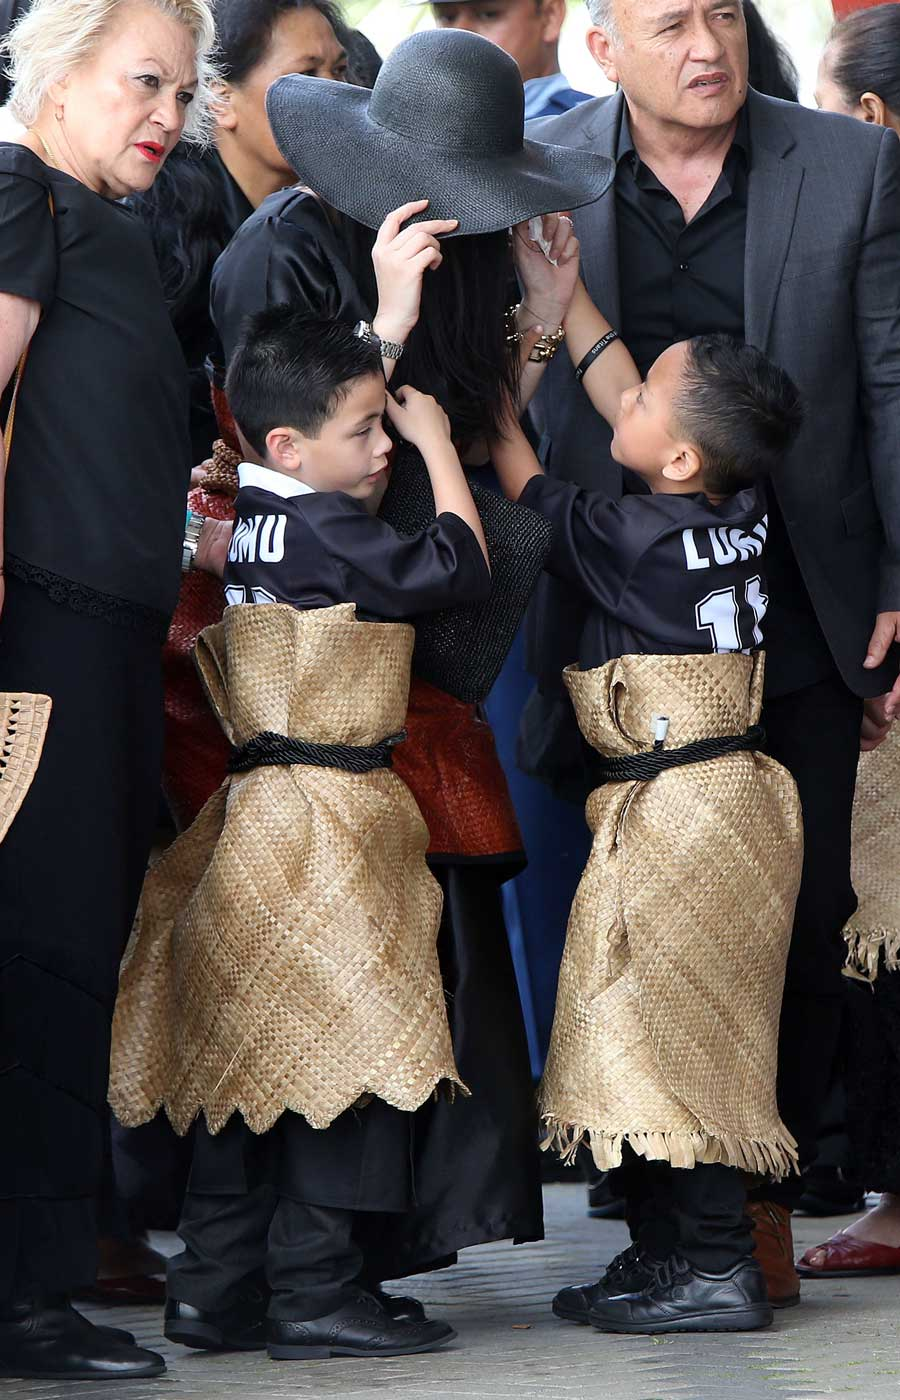 Jonah Lomu's sons Brayley (left) and Dhyreille (right) attend the Jonah Lomu Aho Faka Famili in Auckland, a celebration of their father's life